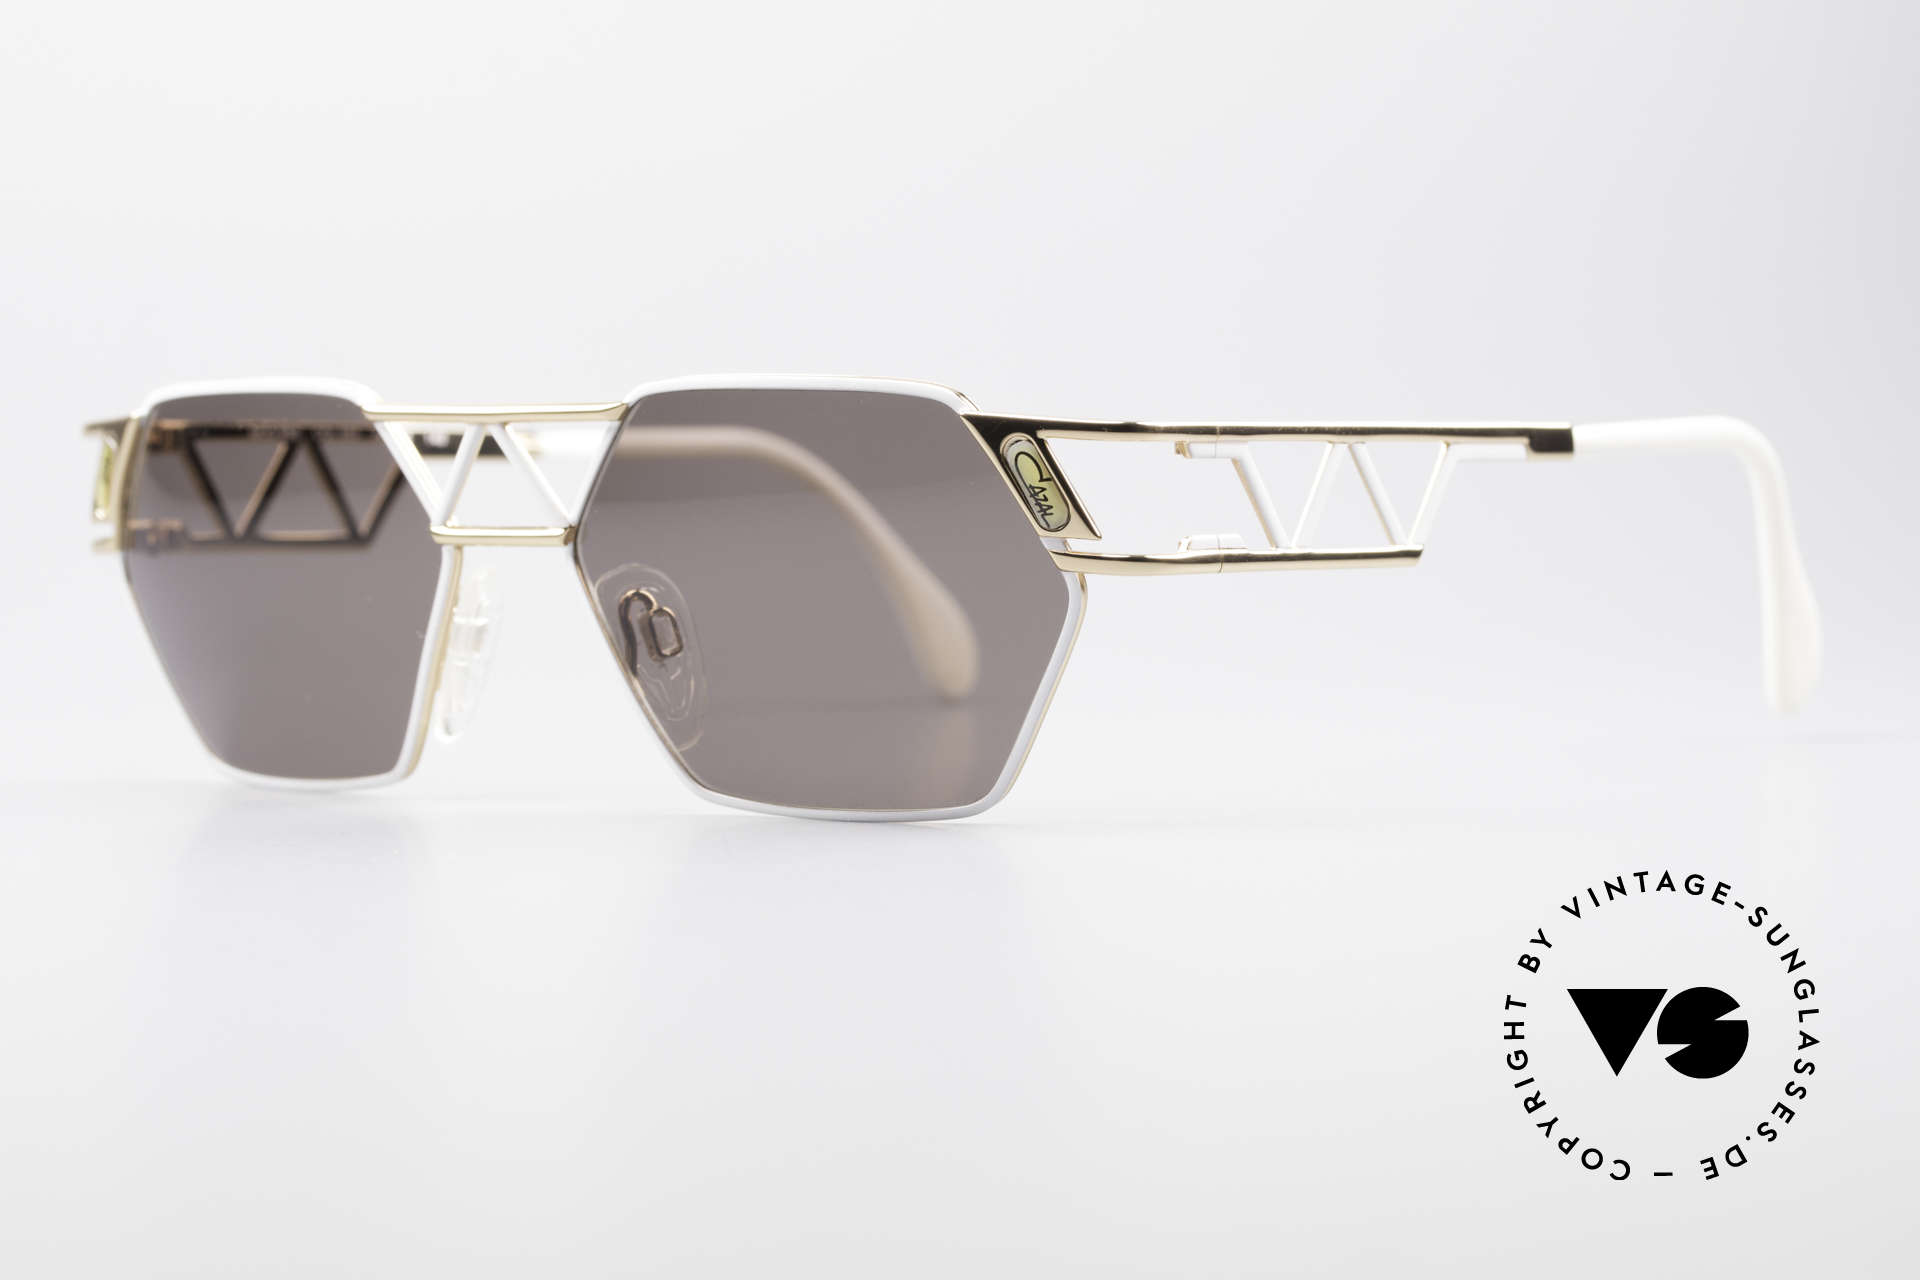 Cazal 960 Rare Designer Sunglasses, tangible superior crafting quality (made in Germany), Made for Men and Women